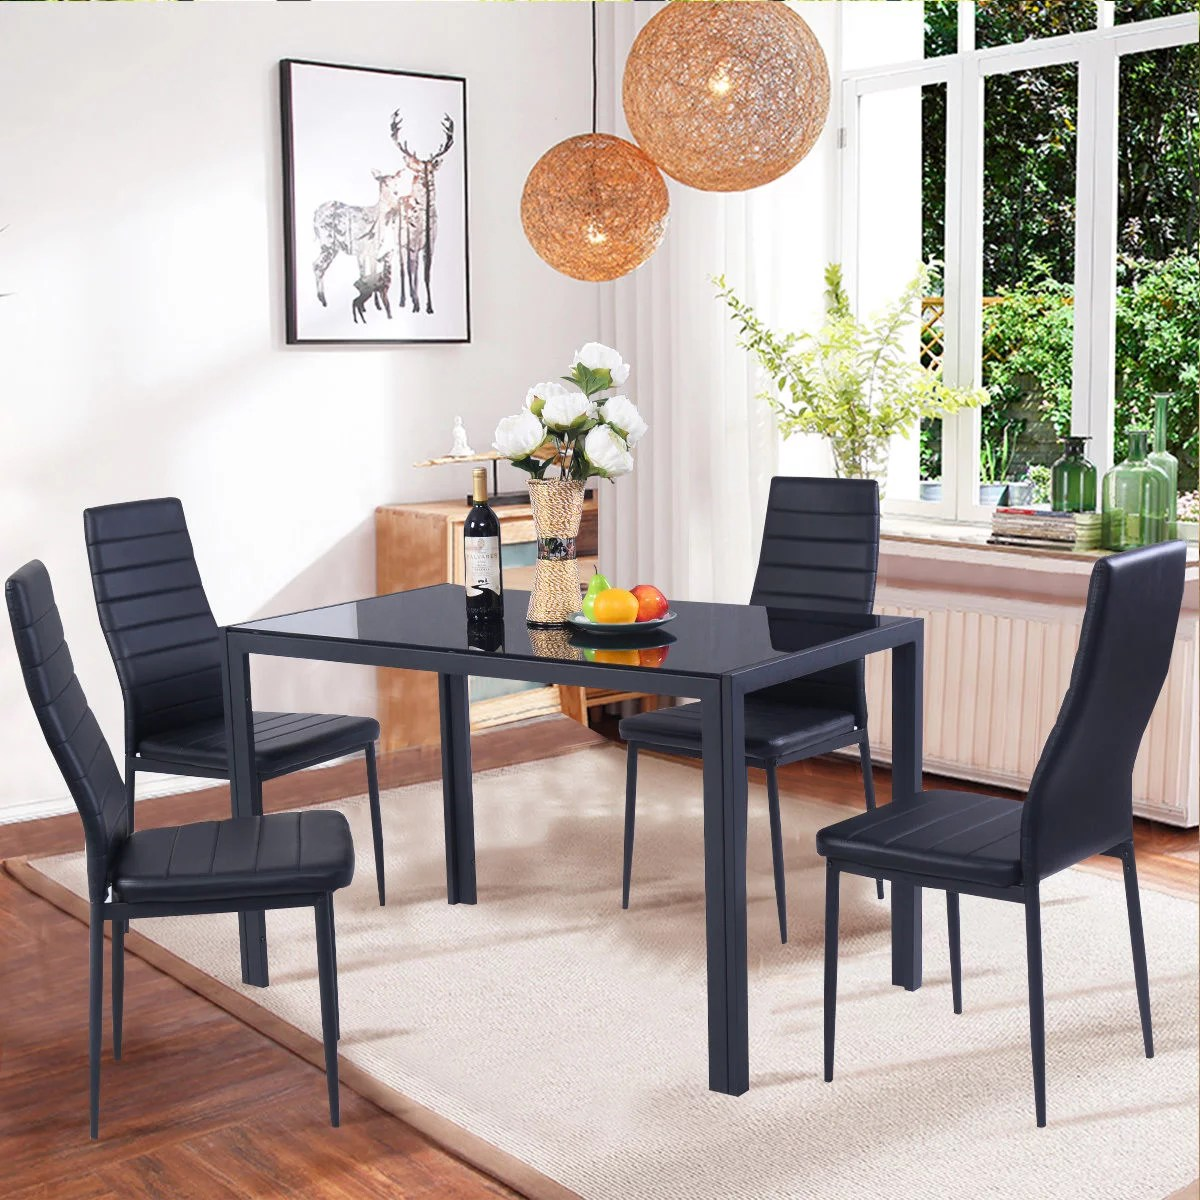 Modern Table And Chairs Costway 5 Piece Kitchen Dining Set Glass Metal Table And 4 Chairs Breakfast Furniture